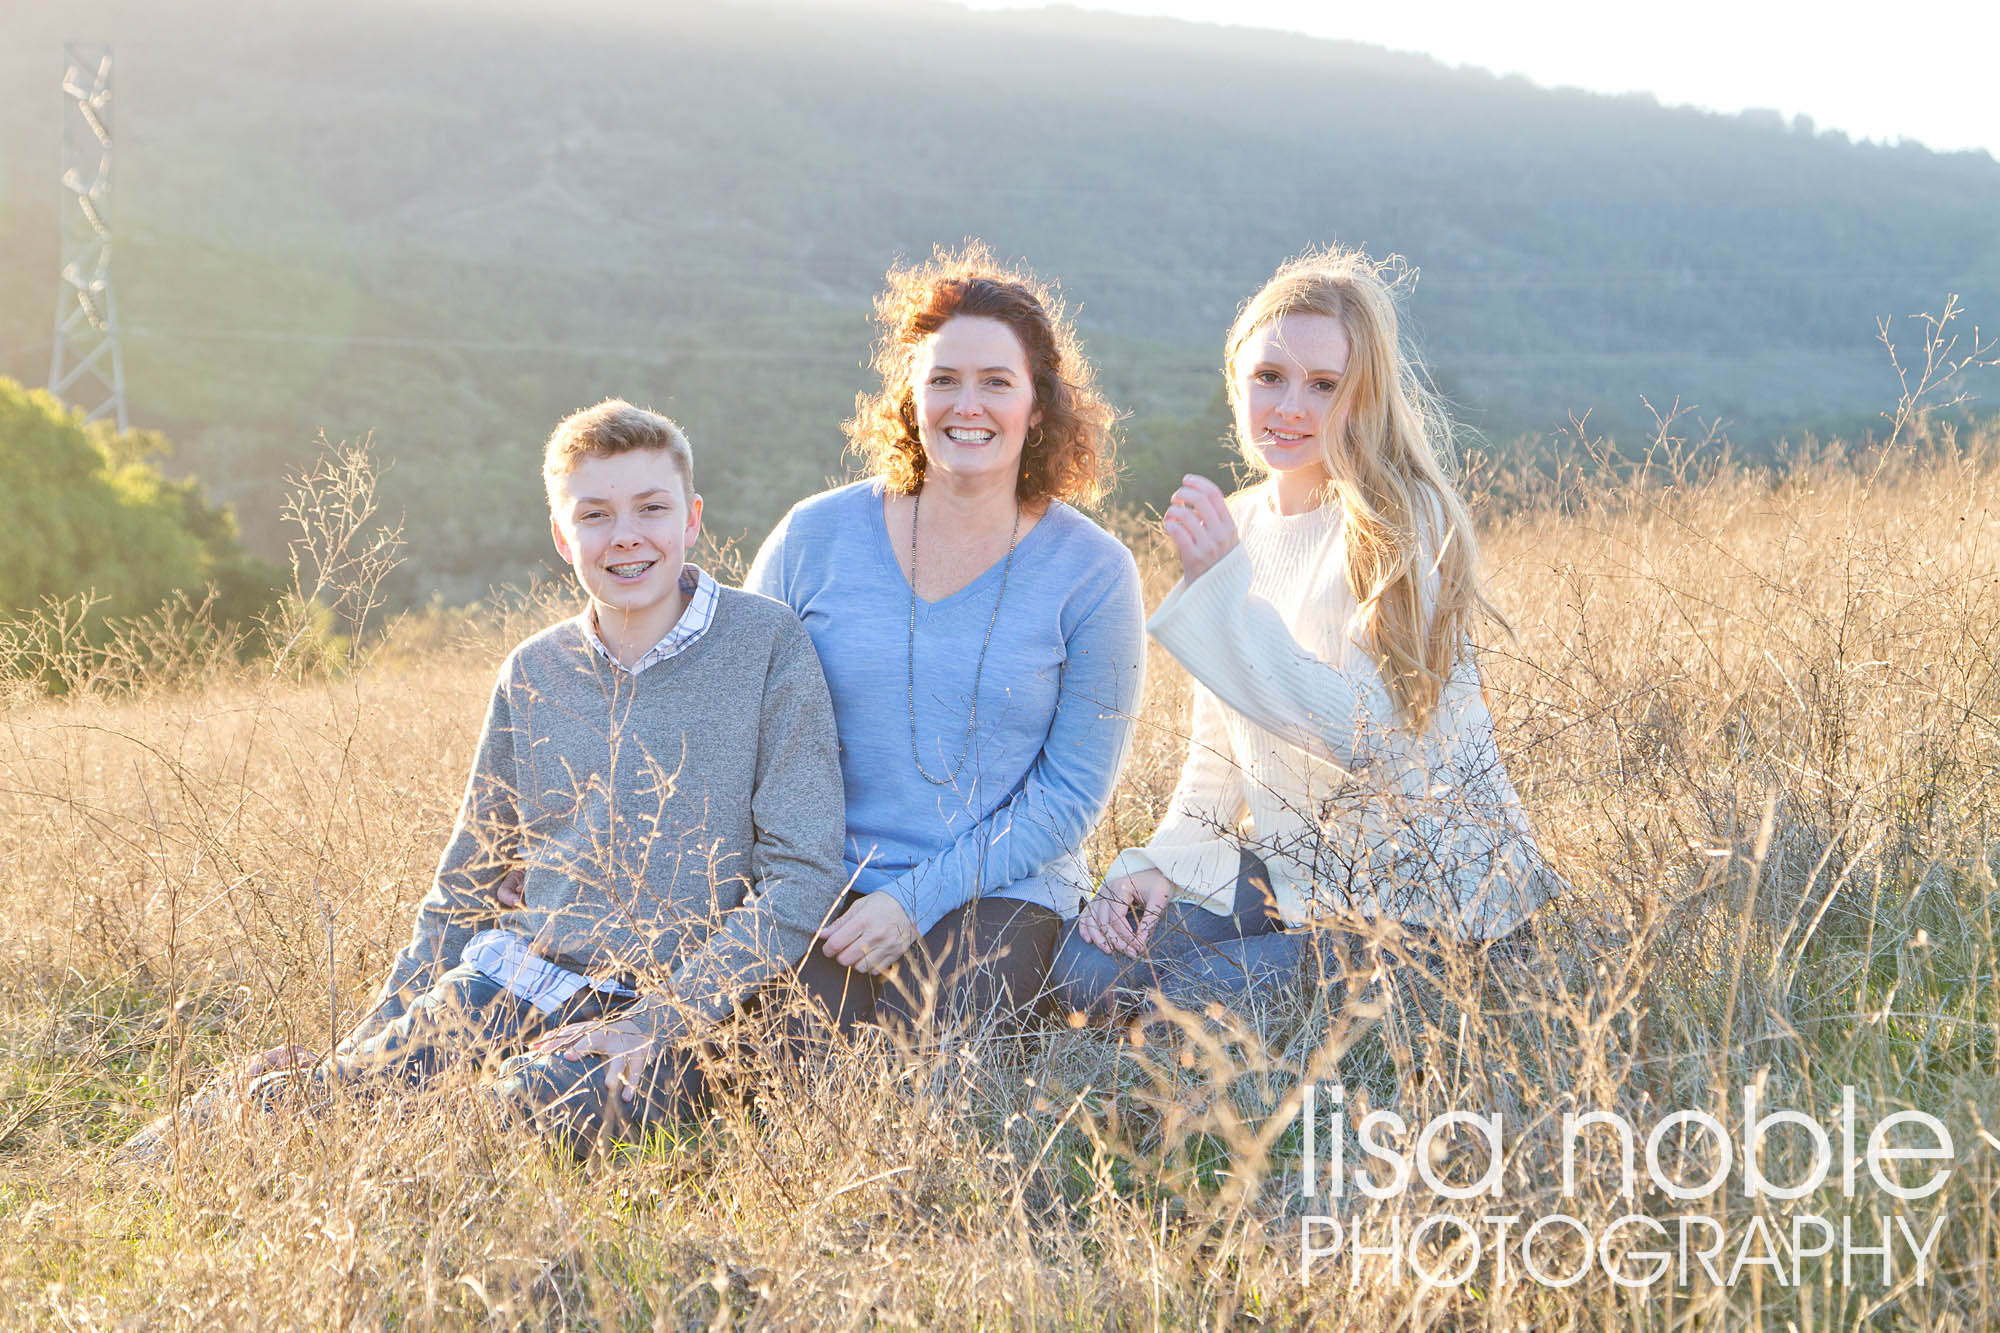 Professional family photography in the golden Bay Area hills